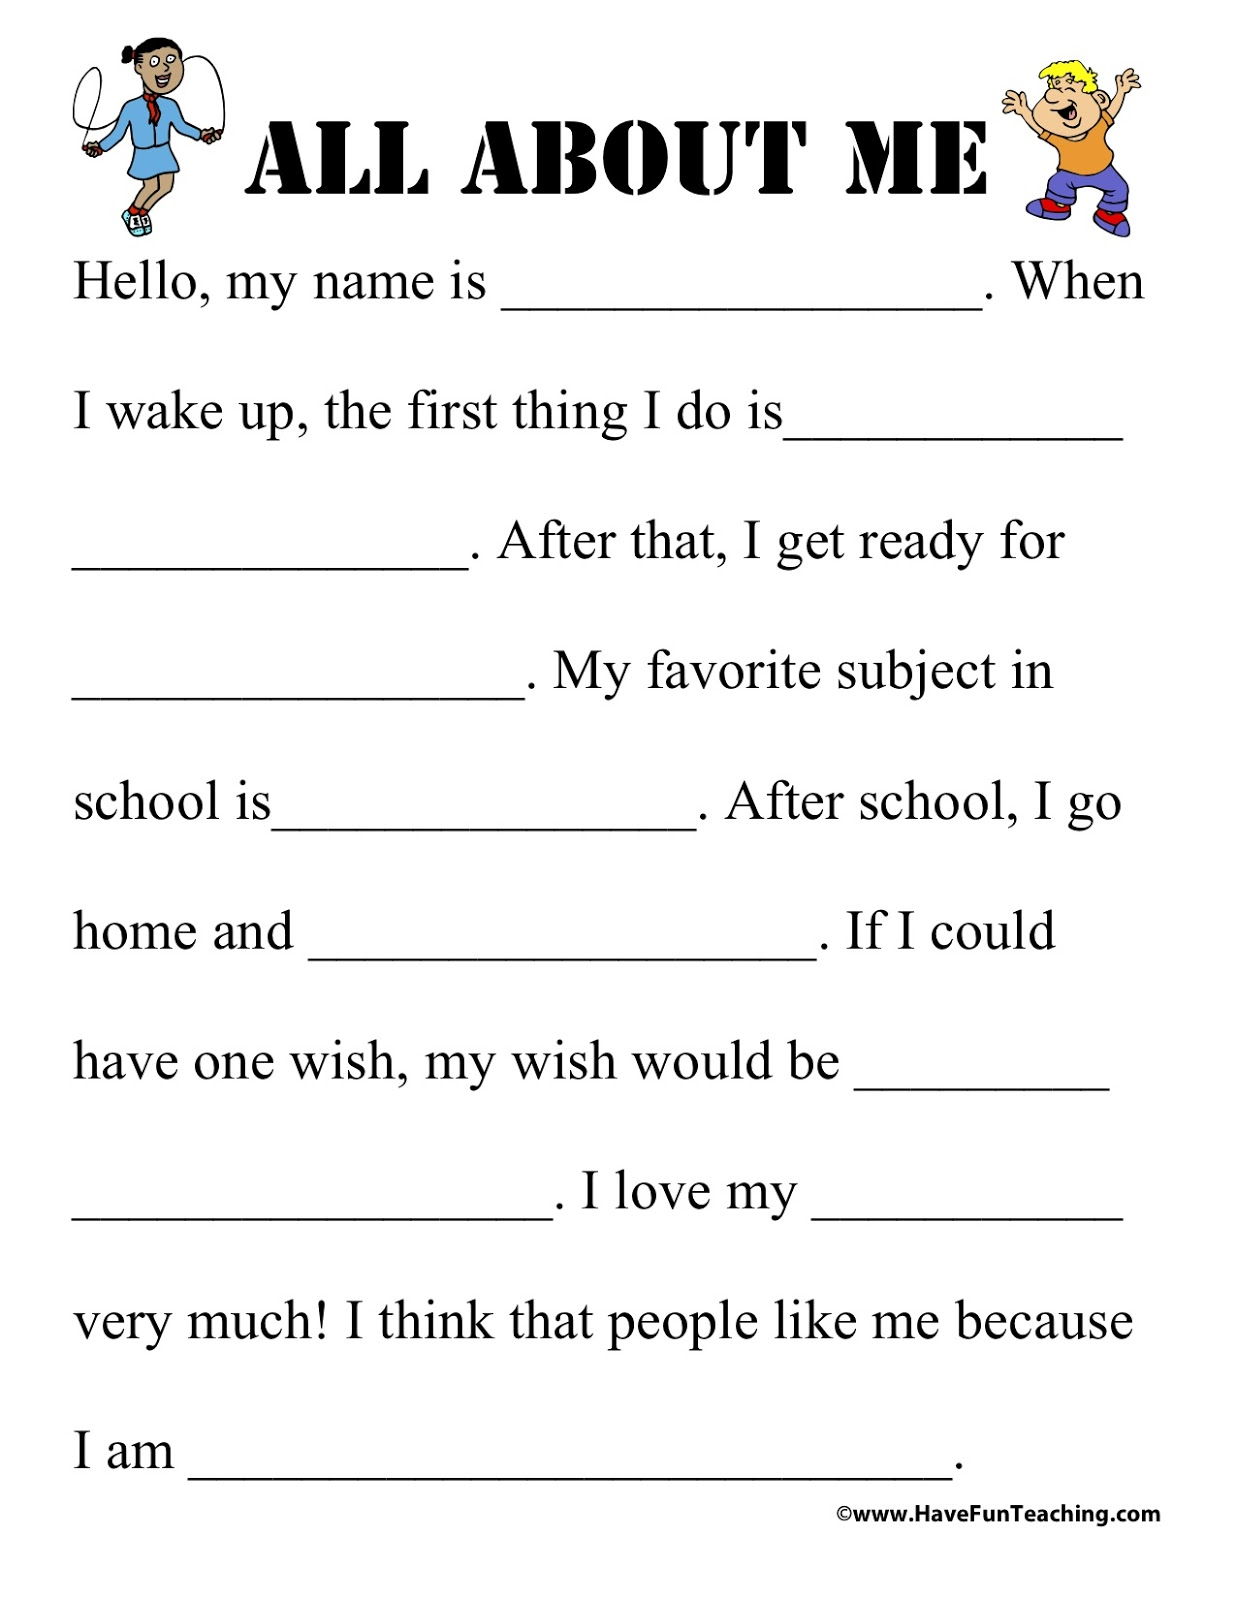 Effortless image for all about me printable worksheets